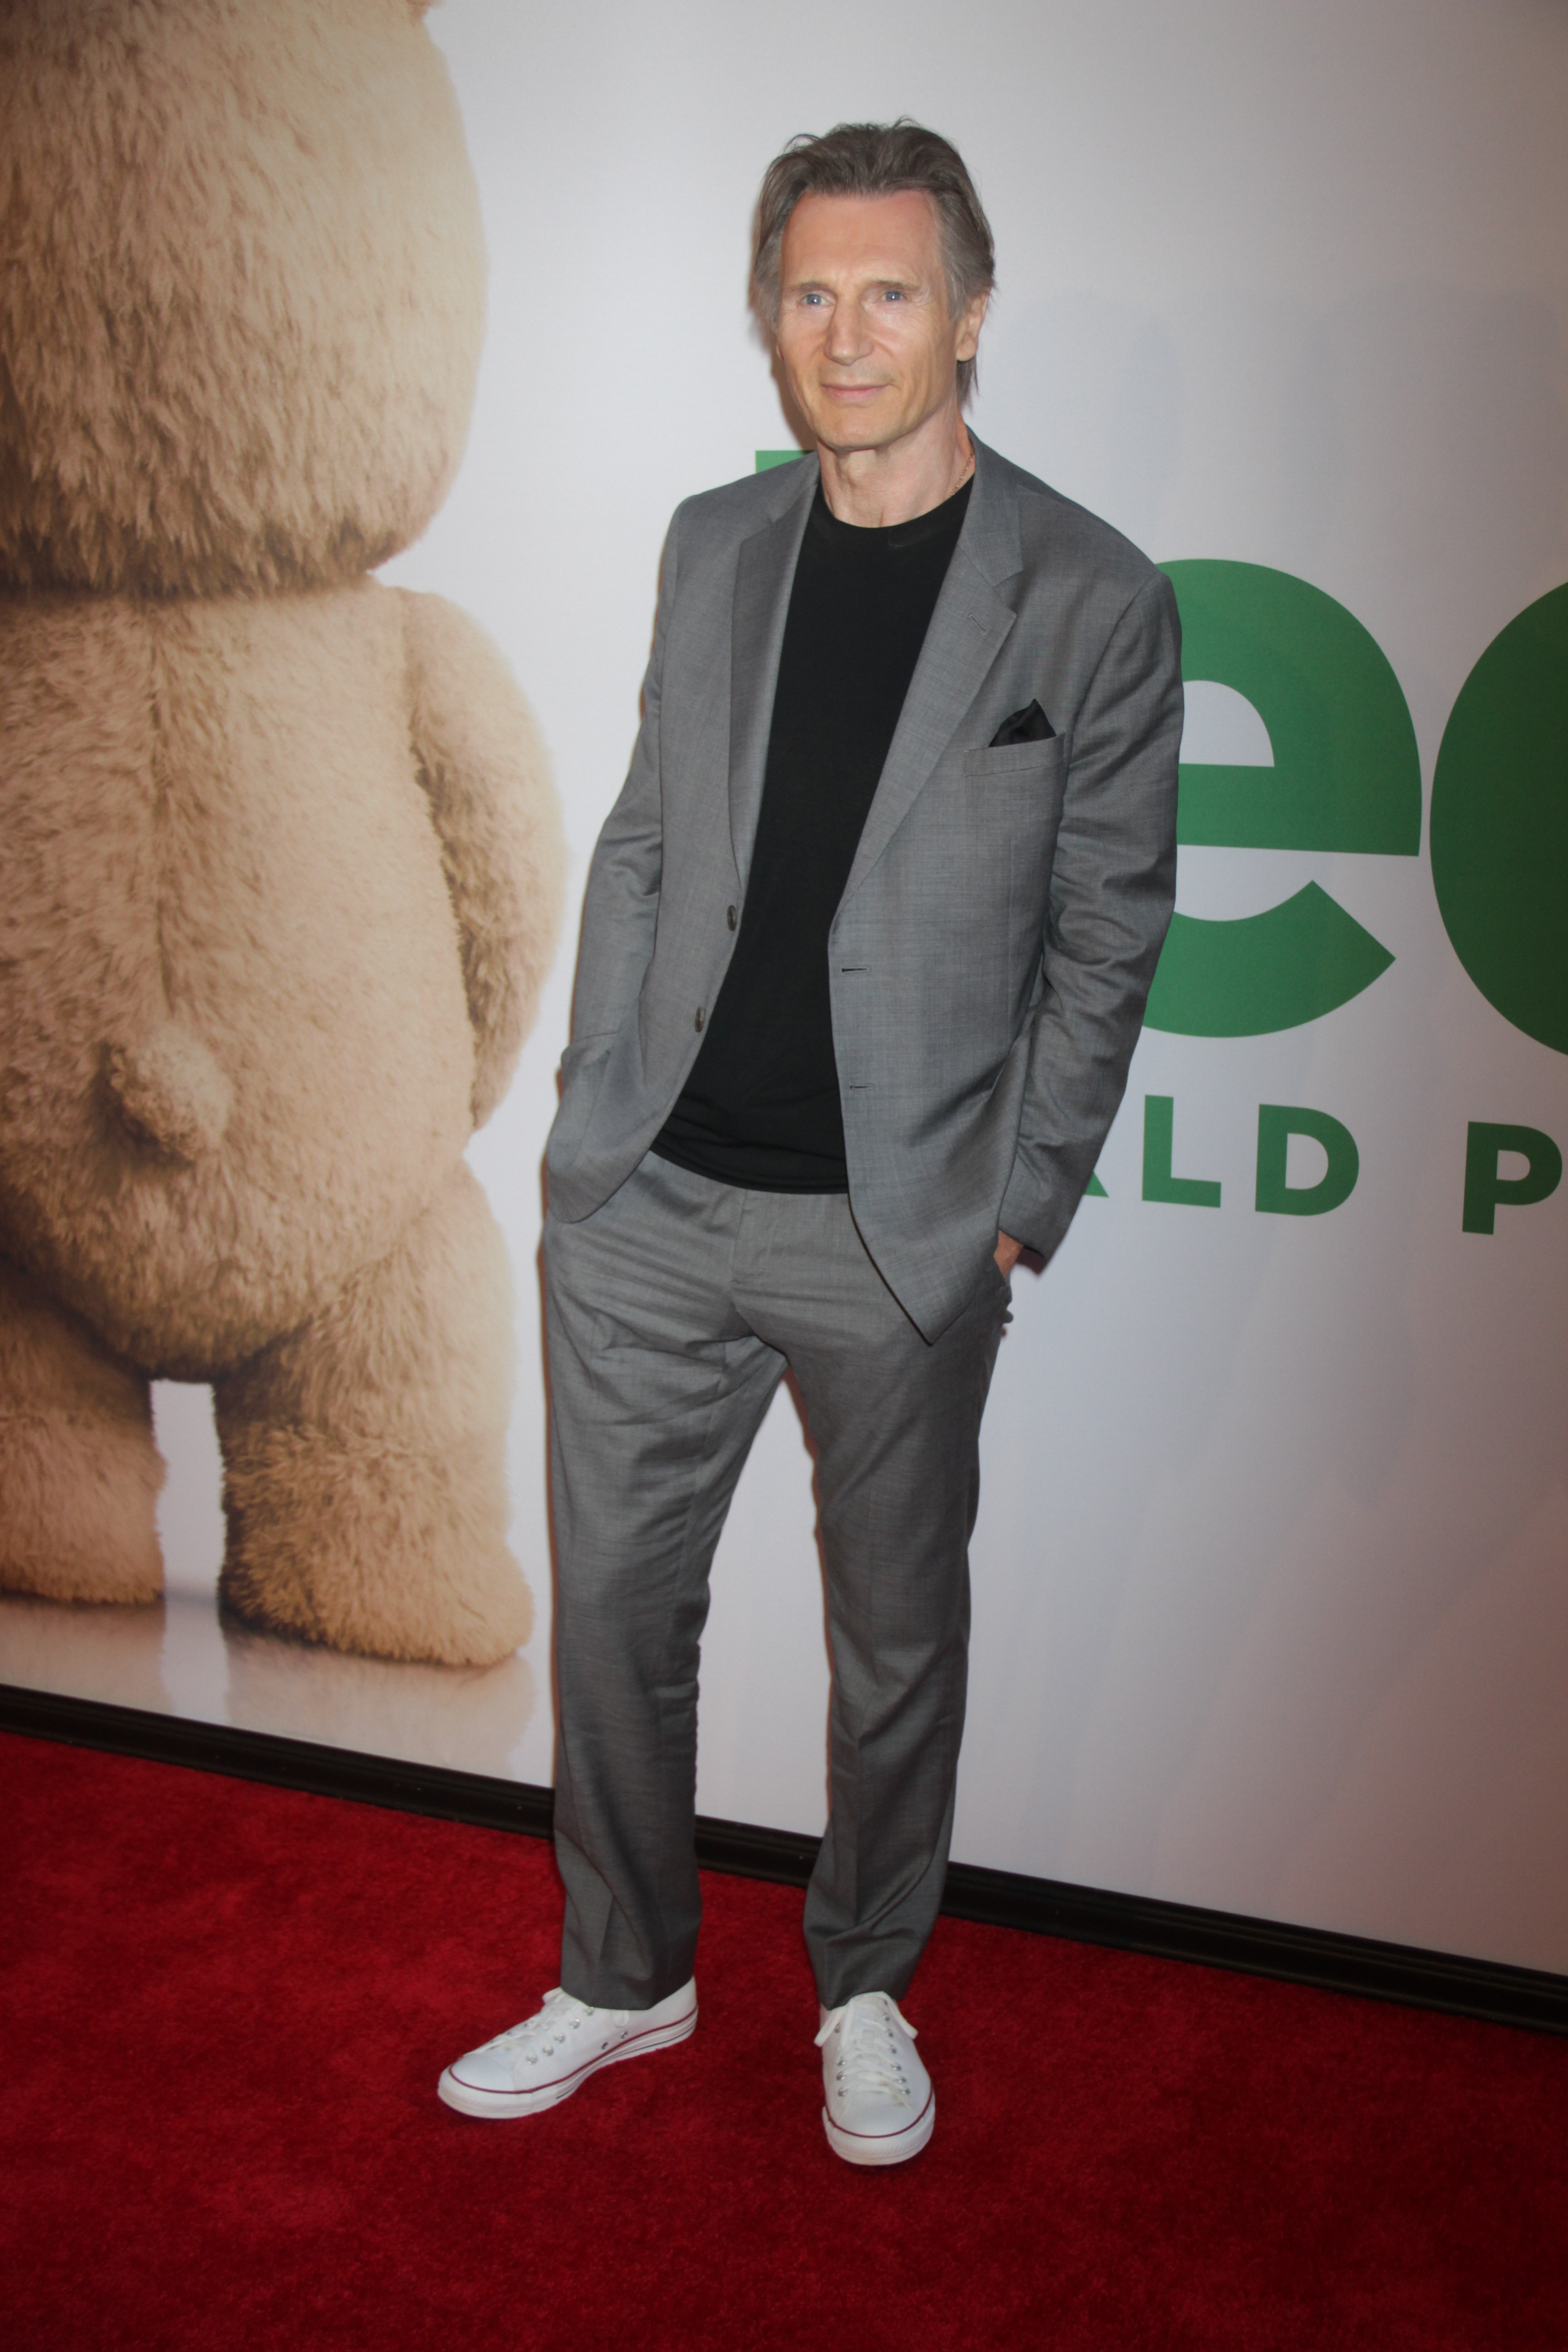 New York premiere of 'Ted 2' at the Ziegfeld Theater - Red Carpet Arrivals                                    Featuring: Liam Neeson                  Where: New York City, New York, United States                  When: 24 Jun 2015                  Credit: Joel Ginsburg/WENN.com